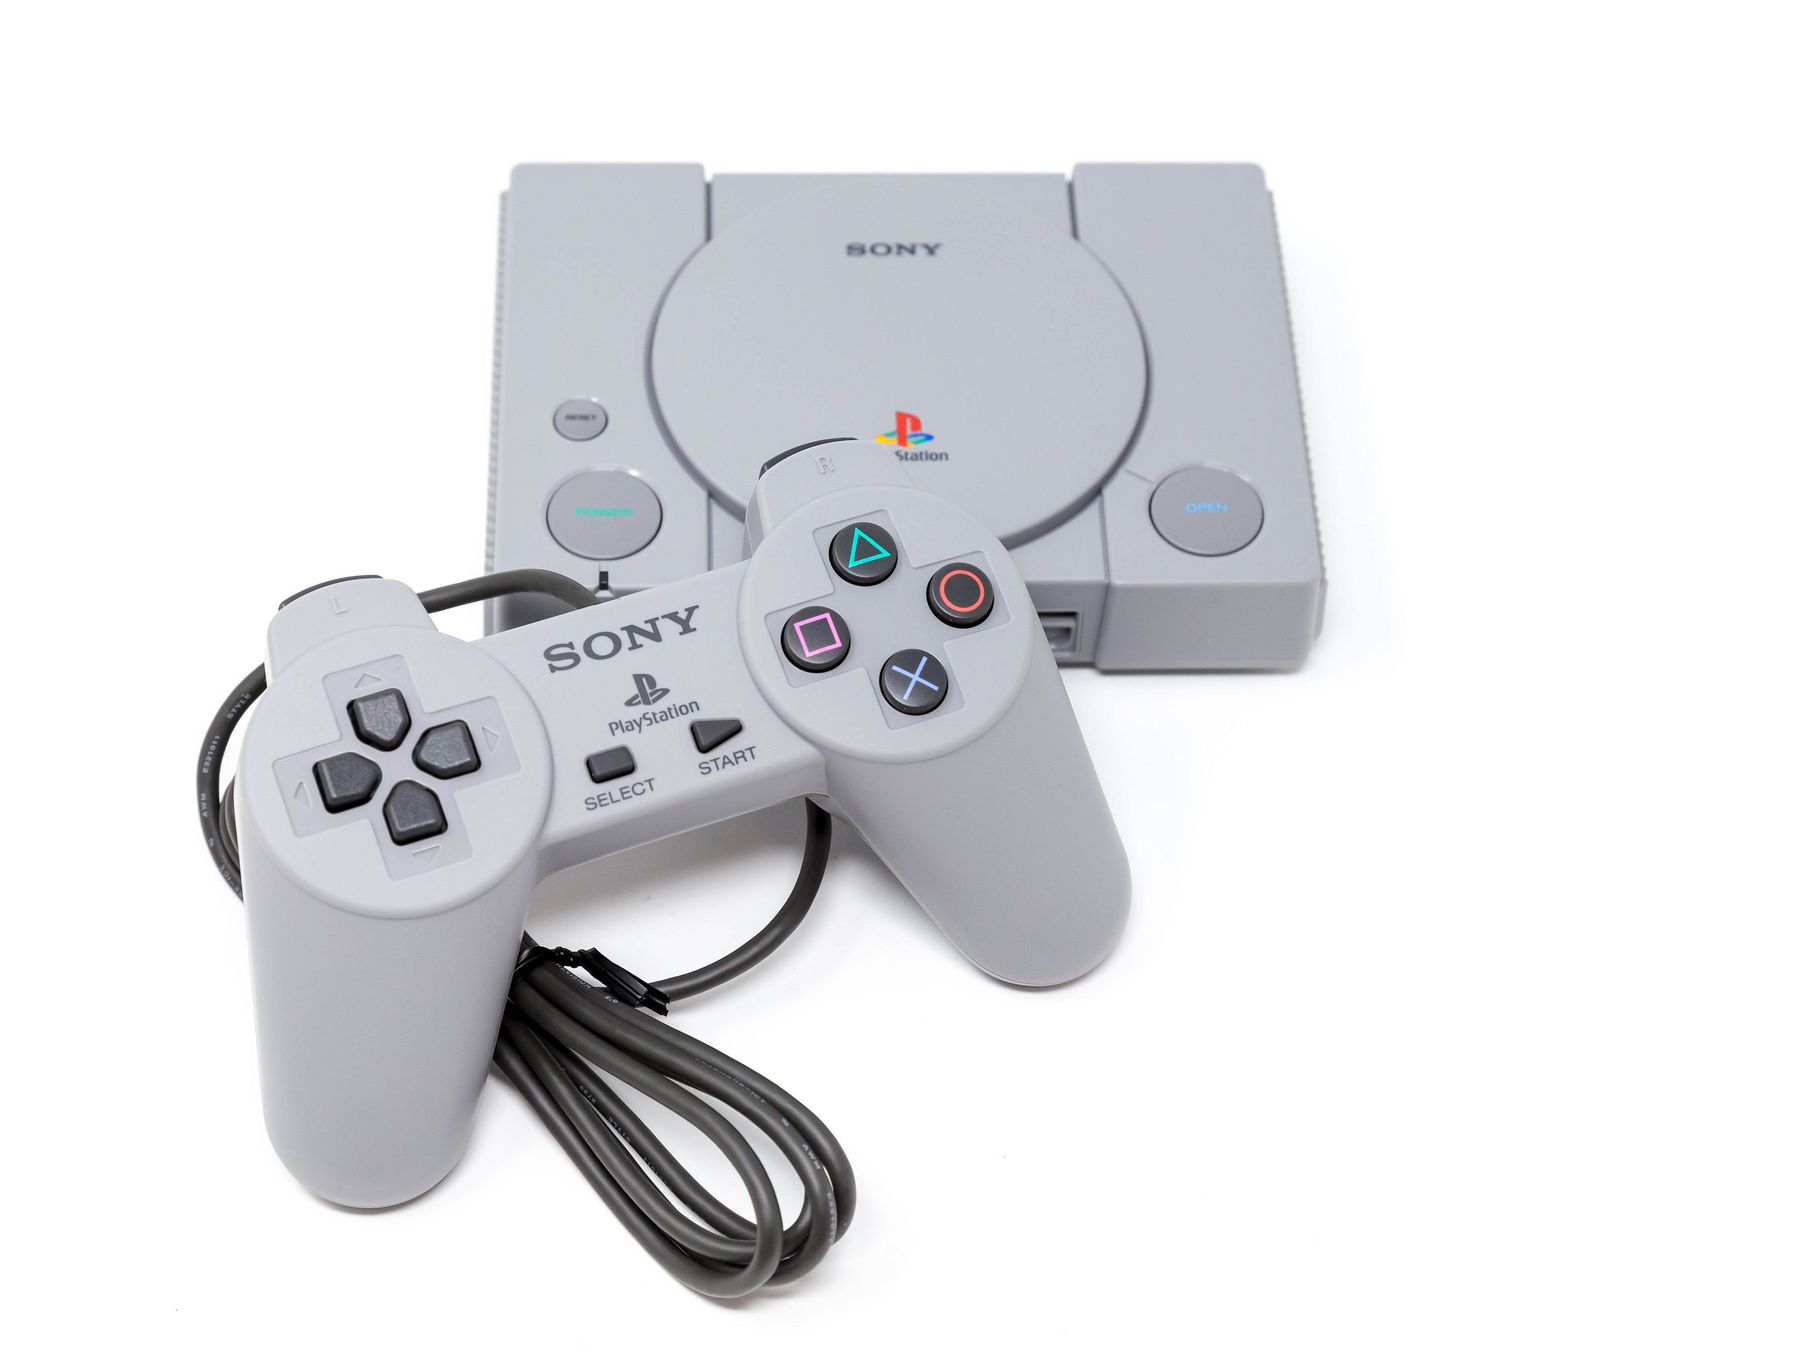 Who Invented The Sony Playstation